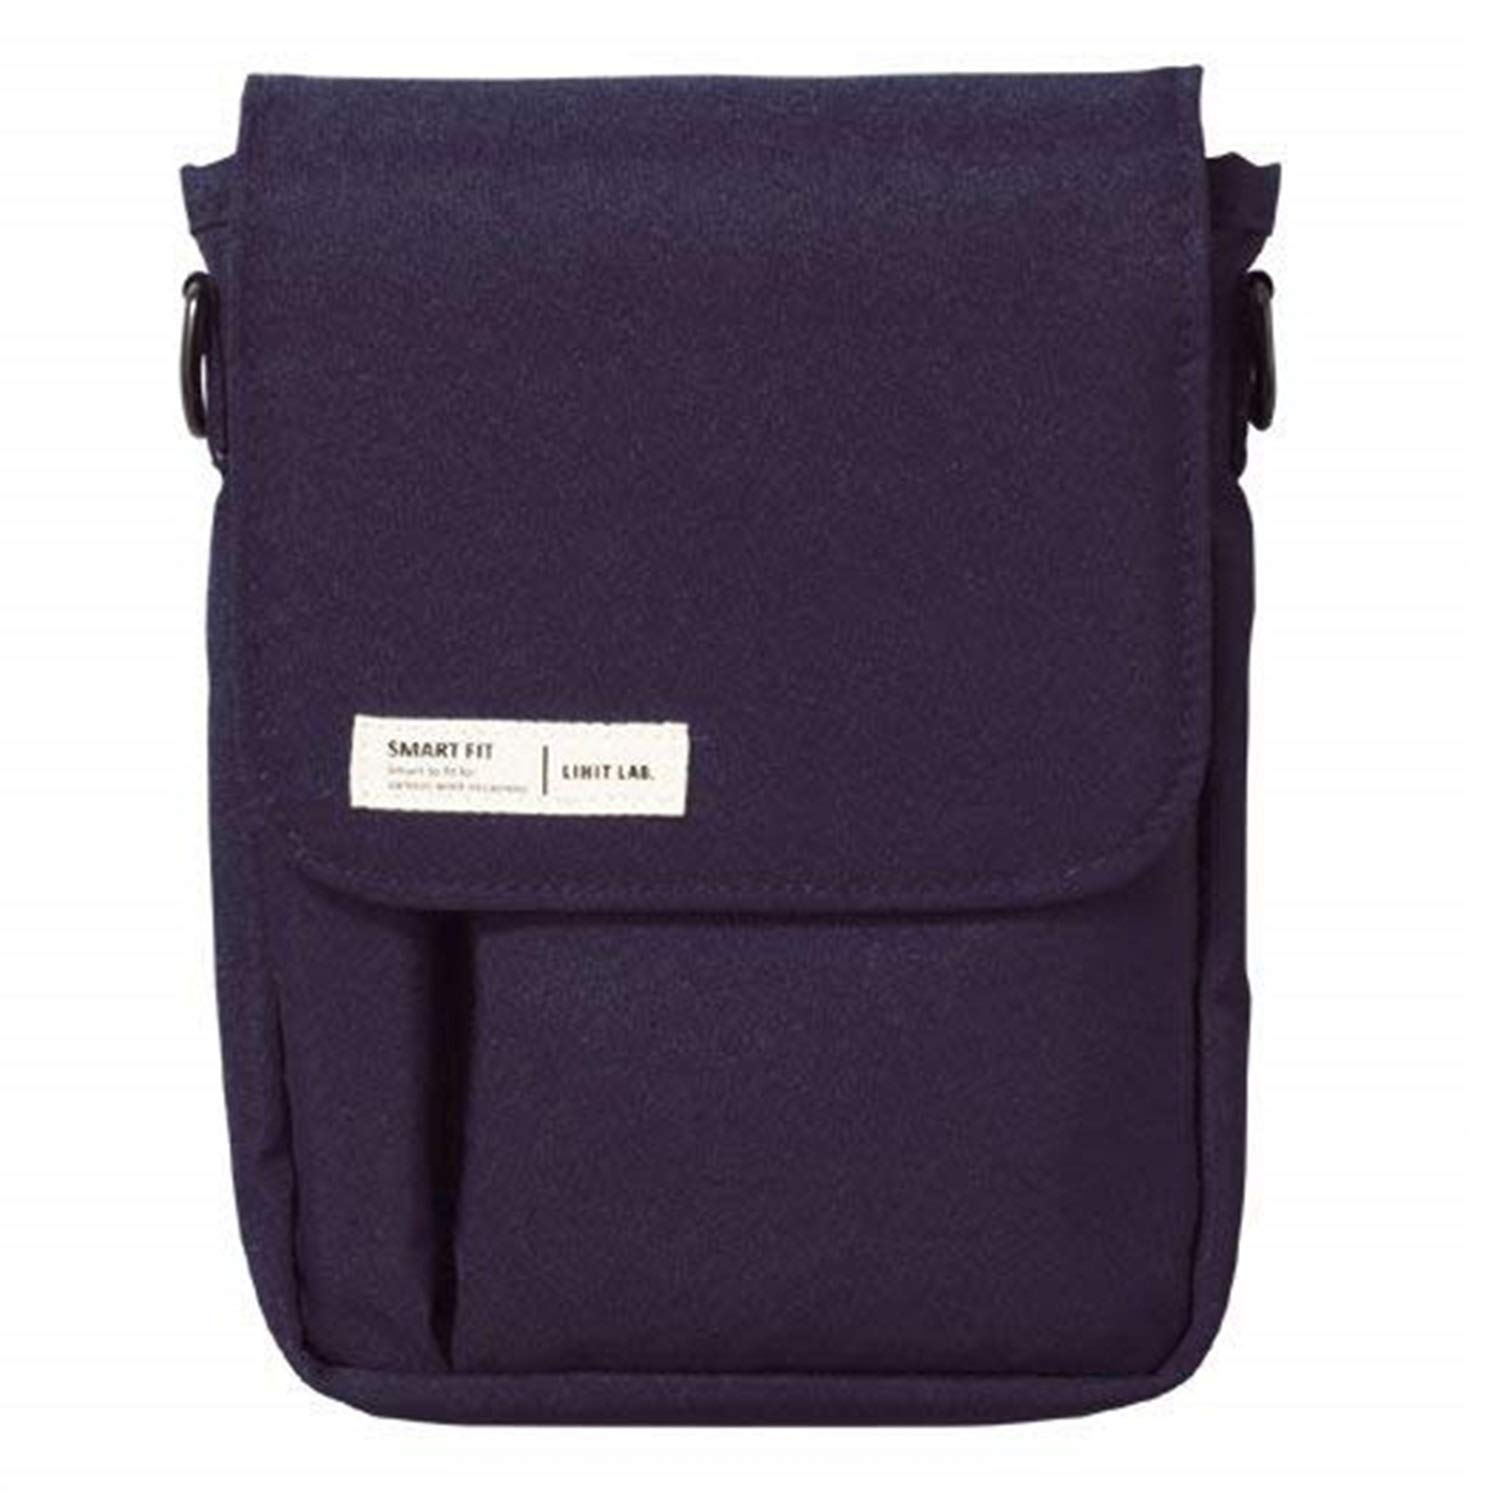 LIHIT LAB Belt Bag, Navy, 7.1 x 5.1 Inches